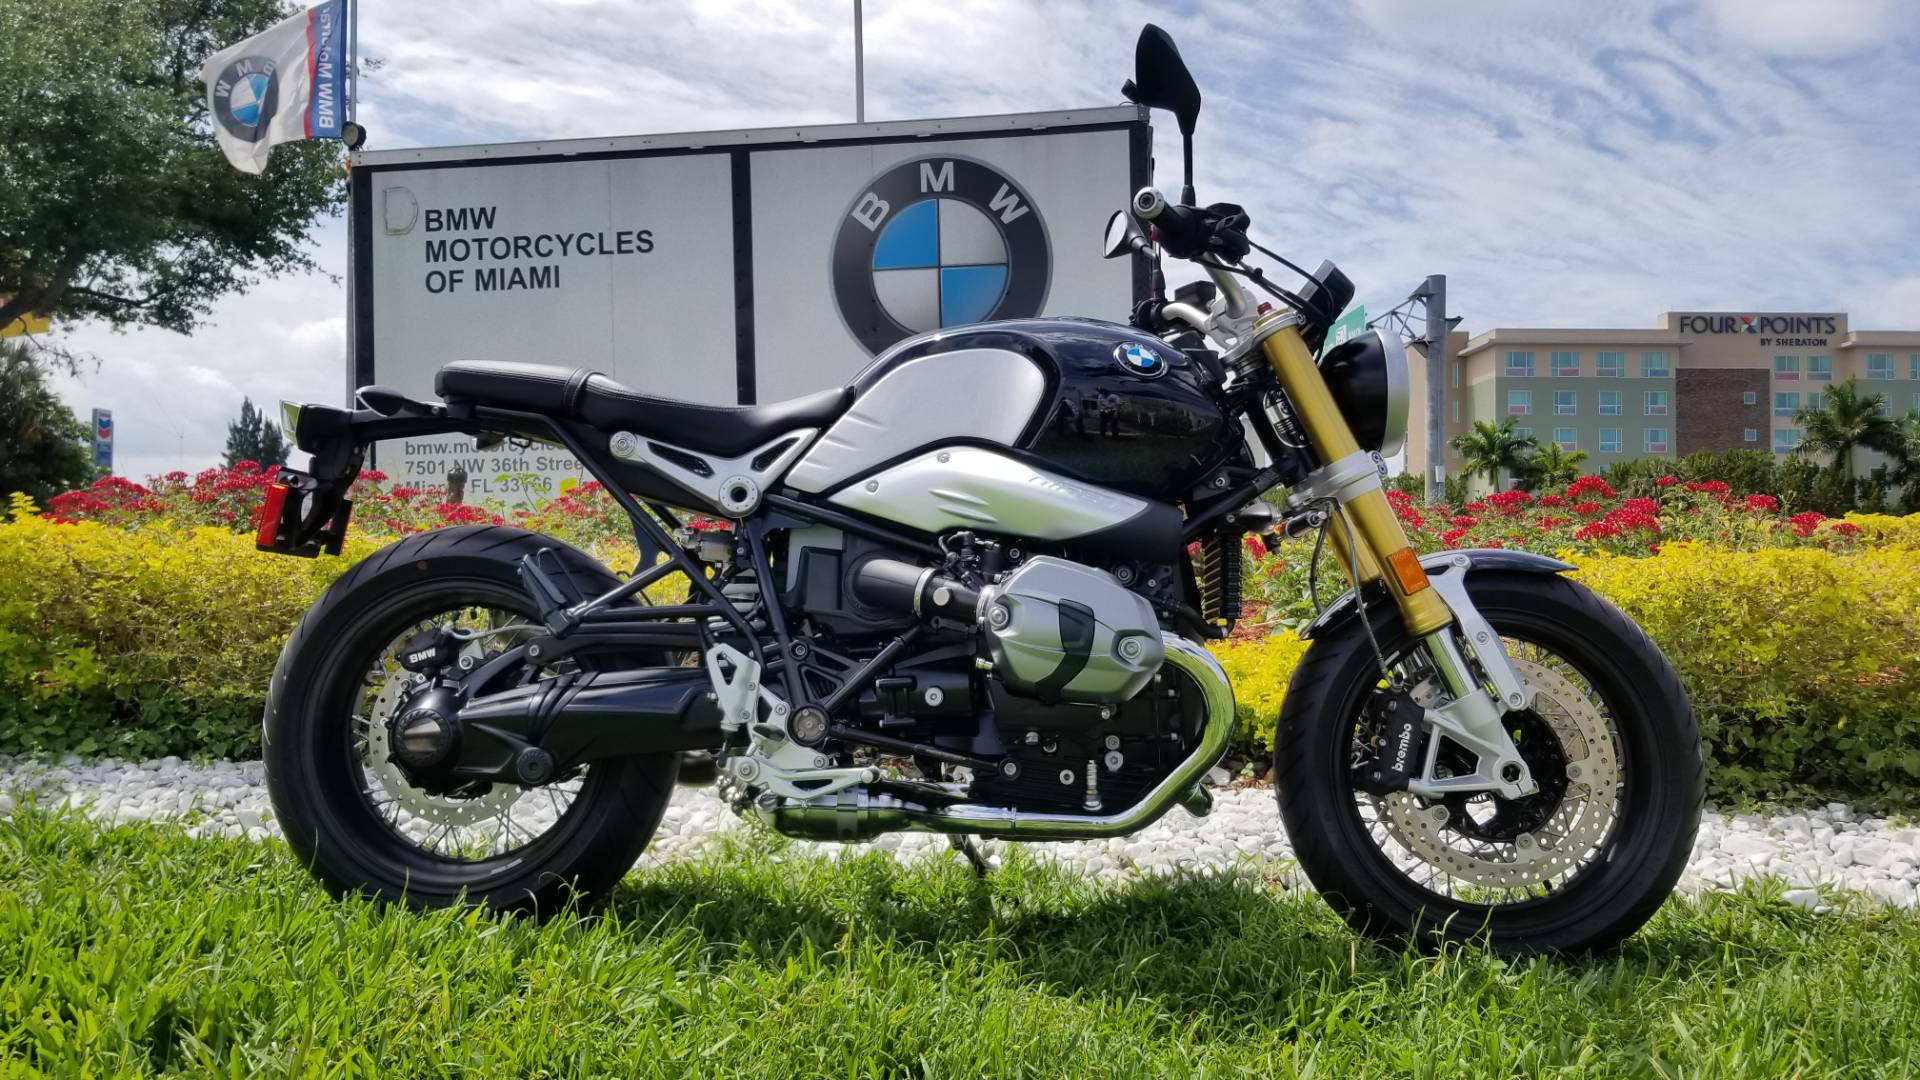 New 2019 BMW R nine T for sale, BMW R nineT for sale, BMW Motorcycle RnineT, BMW Motorcycles of Miami, Motorcycles of Miami, Motorcycles Miami - Photo 17